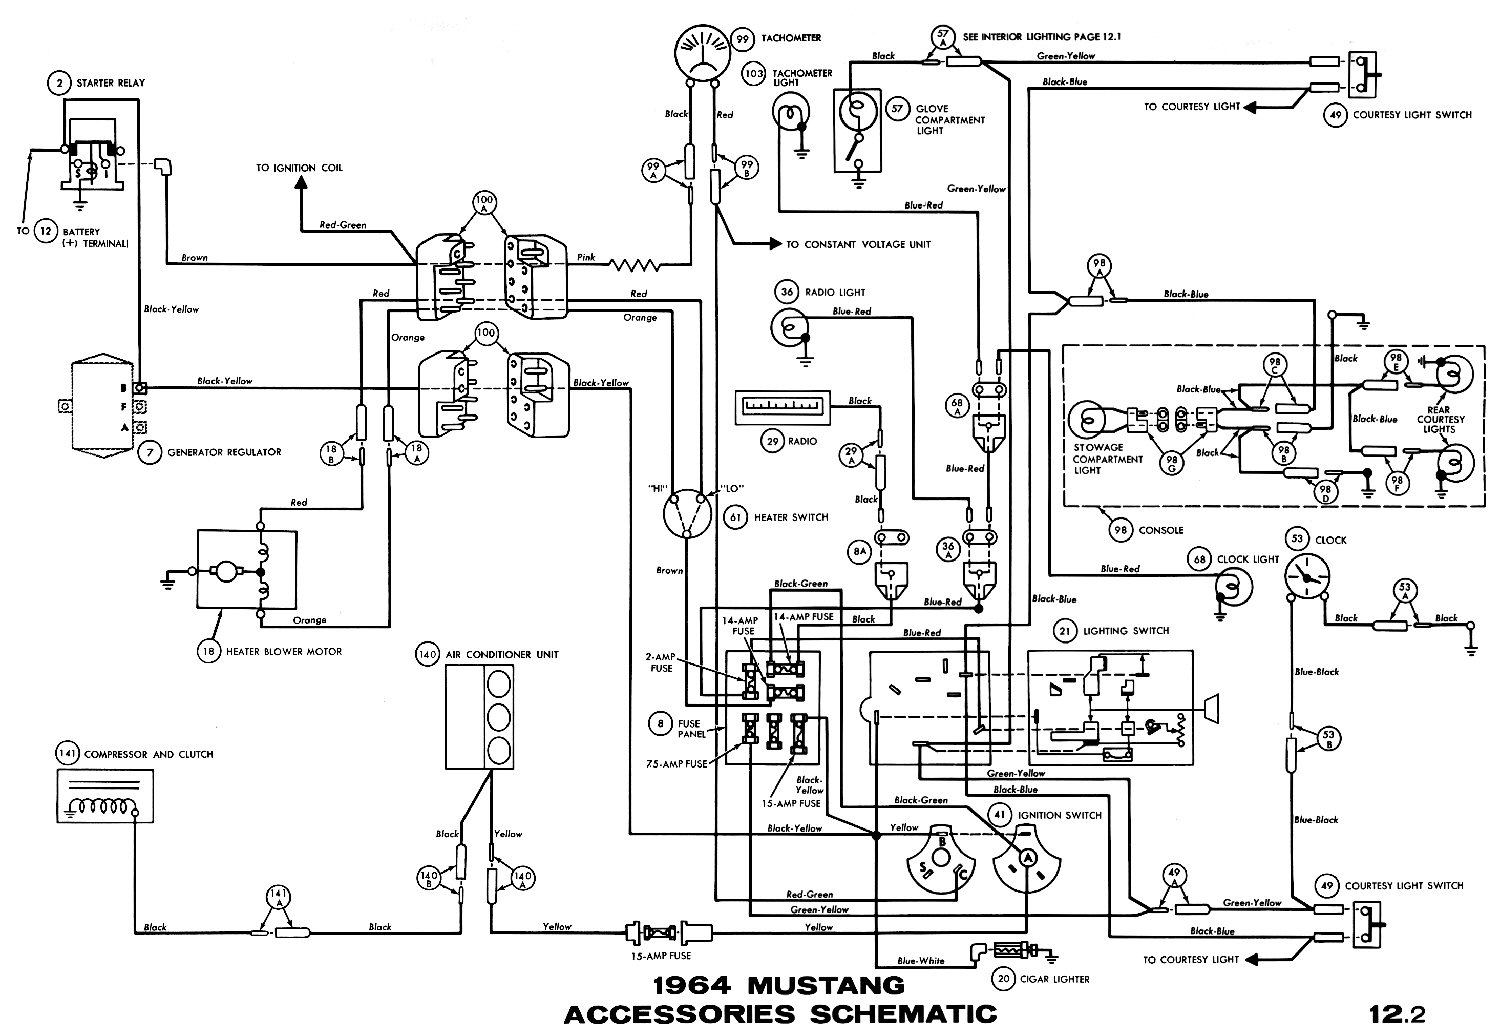 wiring diagram ford mustang wiring image 1964 mustang wiring diagrams average joe restoration on wiring diagram ford mustang 1965